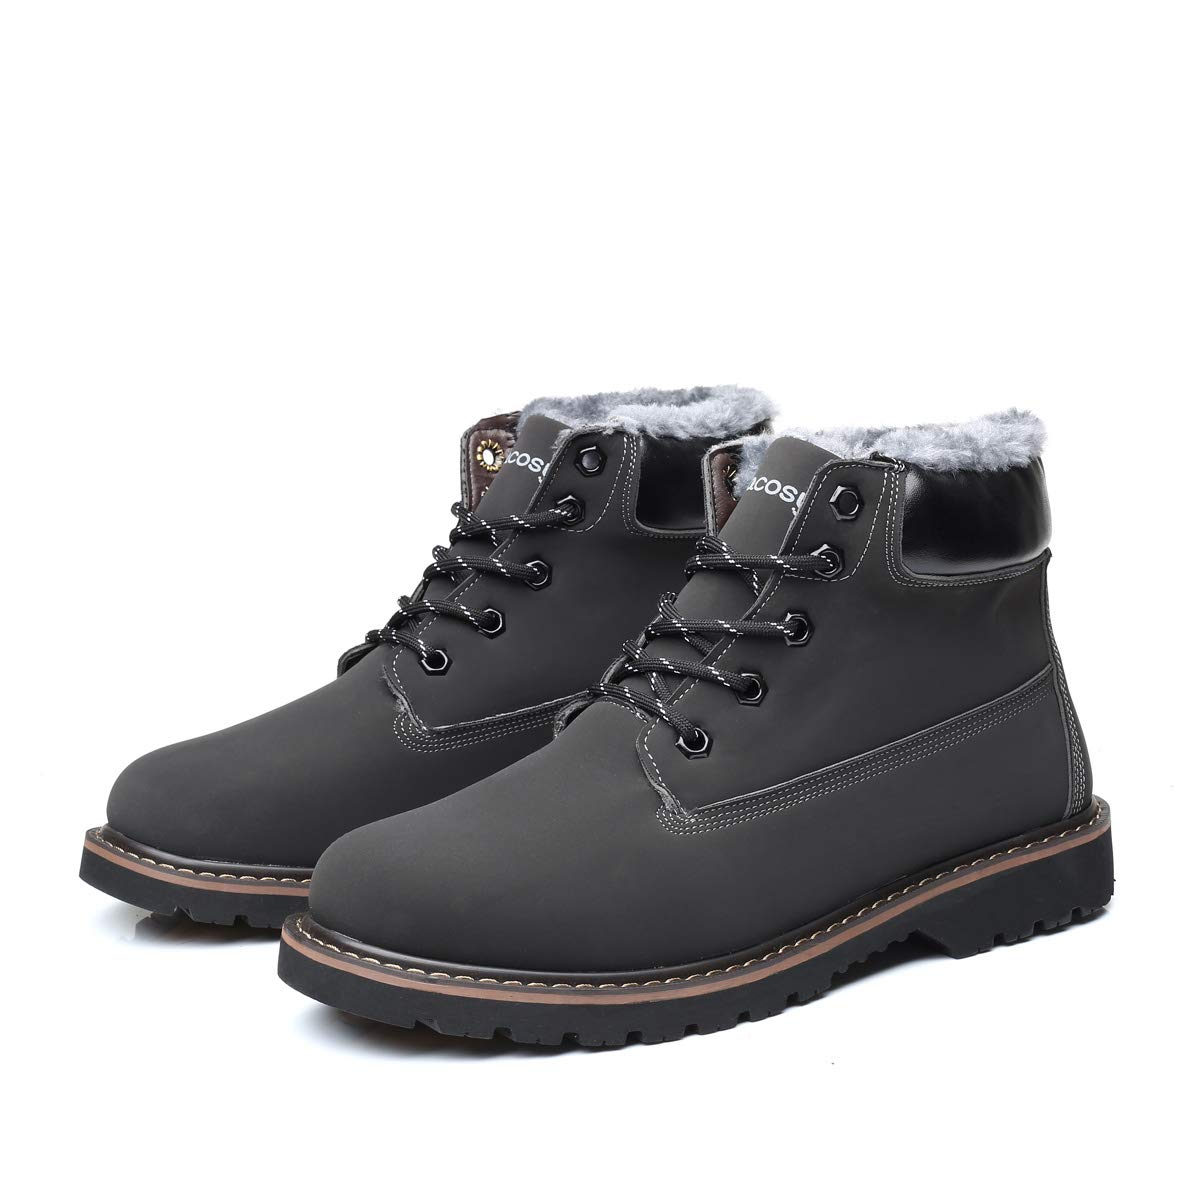 2b7b06086dd gracosy Mens Ankle Boots Winter Causal Outdoor Warm Boots Suede Leather  Waterproof Boots Lace Up Fur Lined Round Toe Snow Boots Work Formal Footwear  Shoes ...